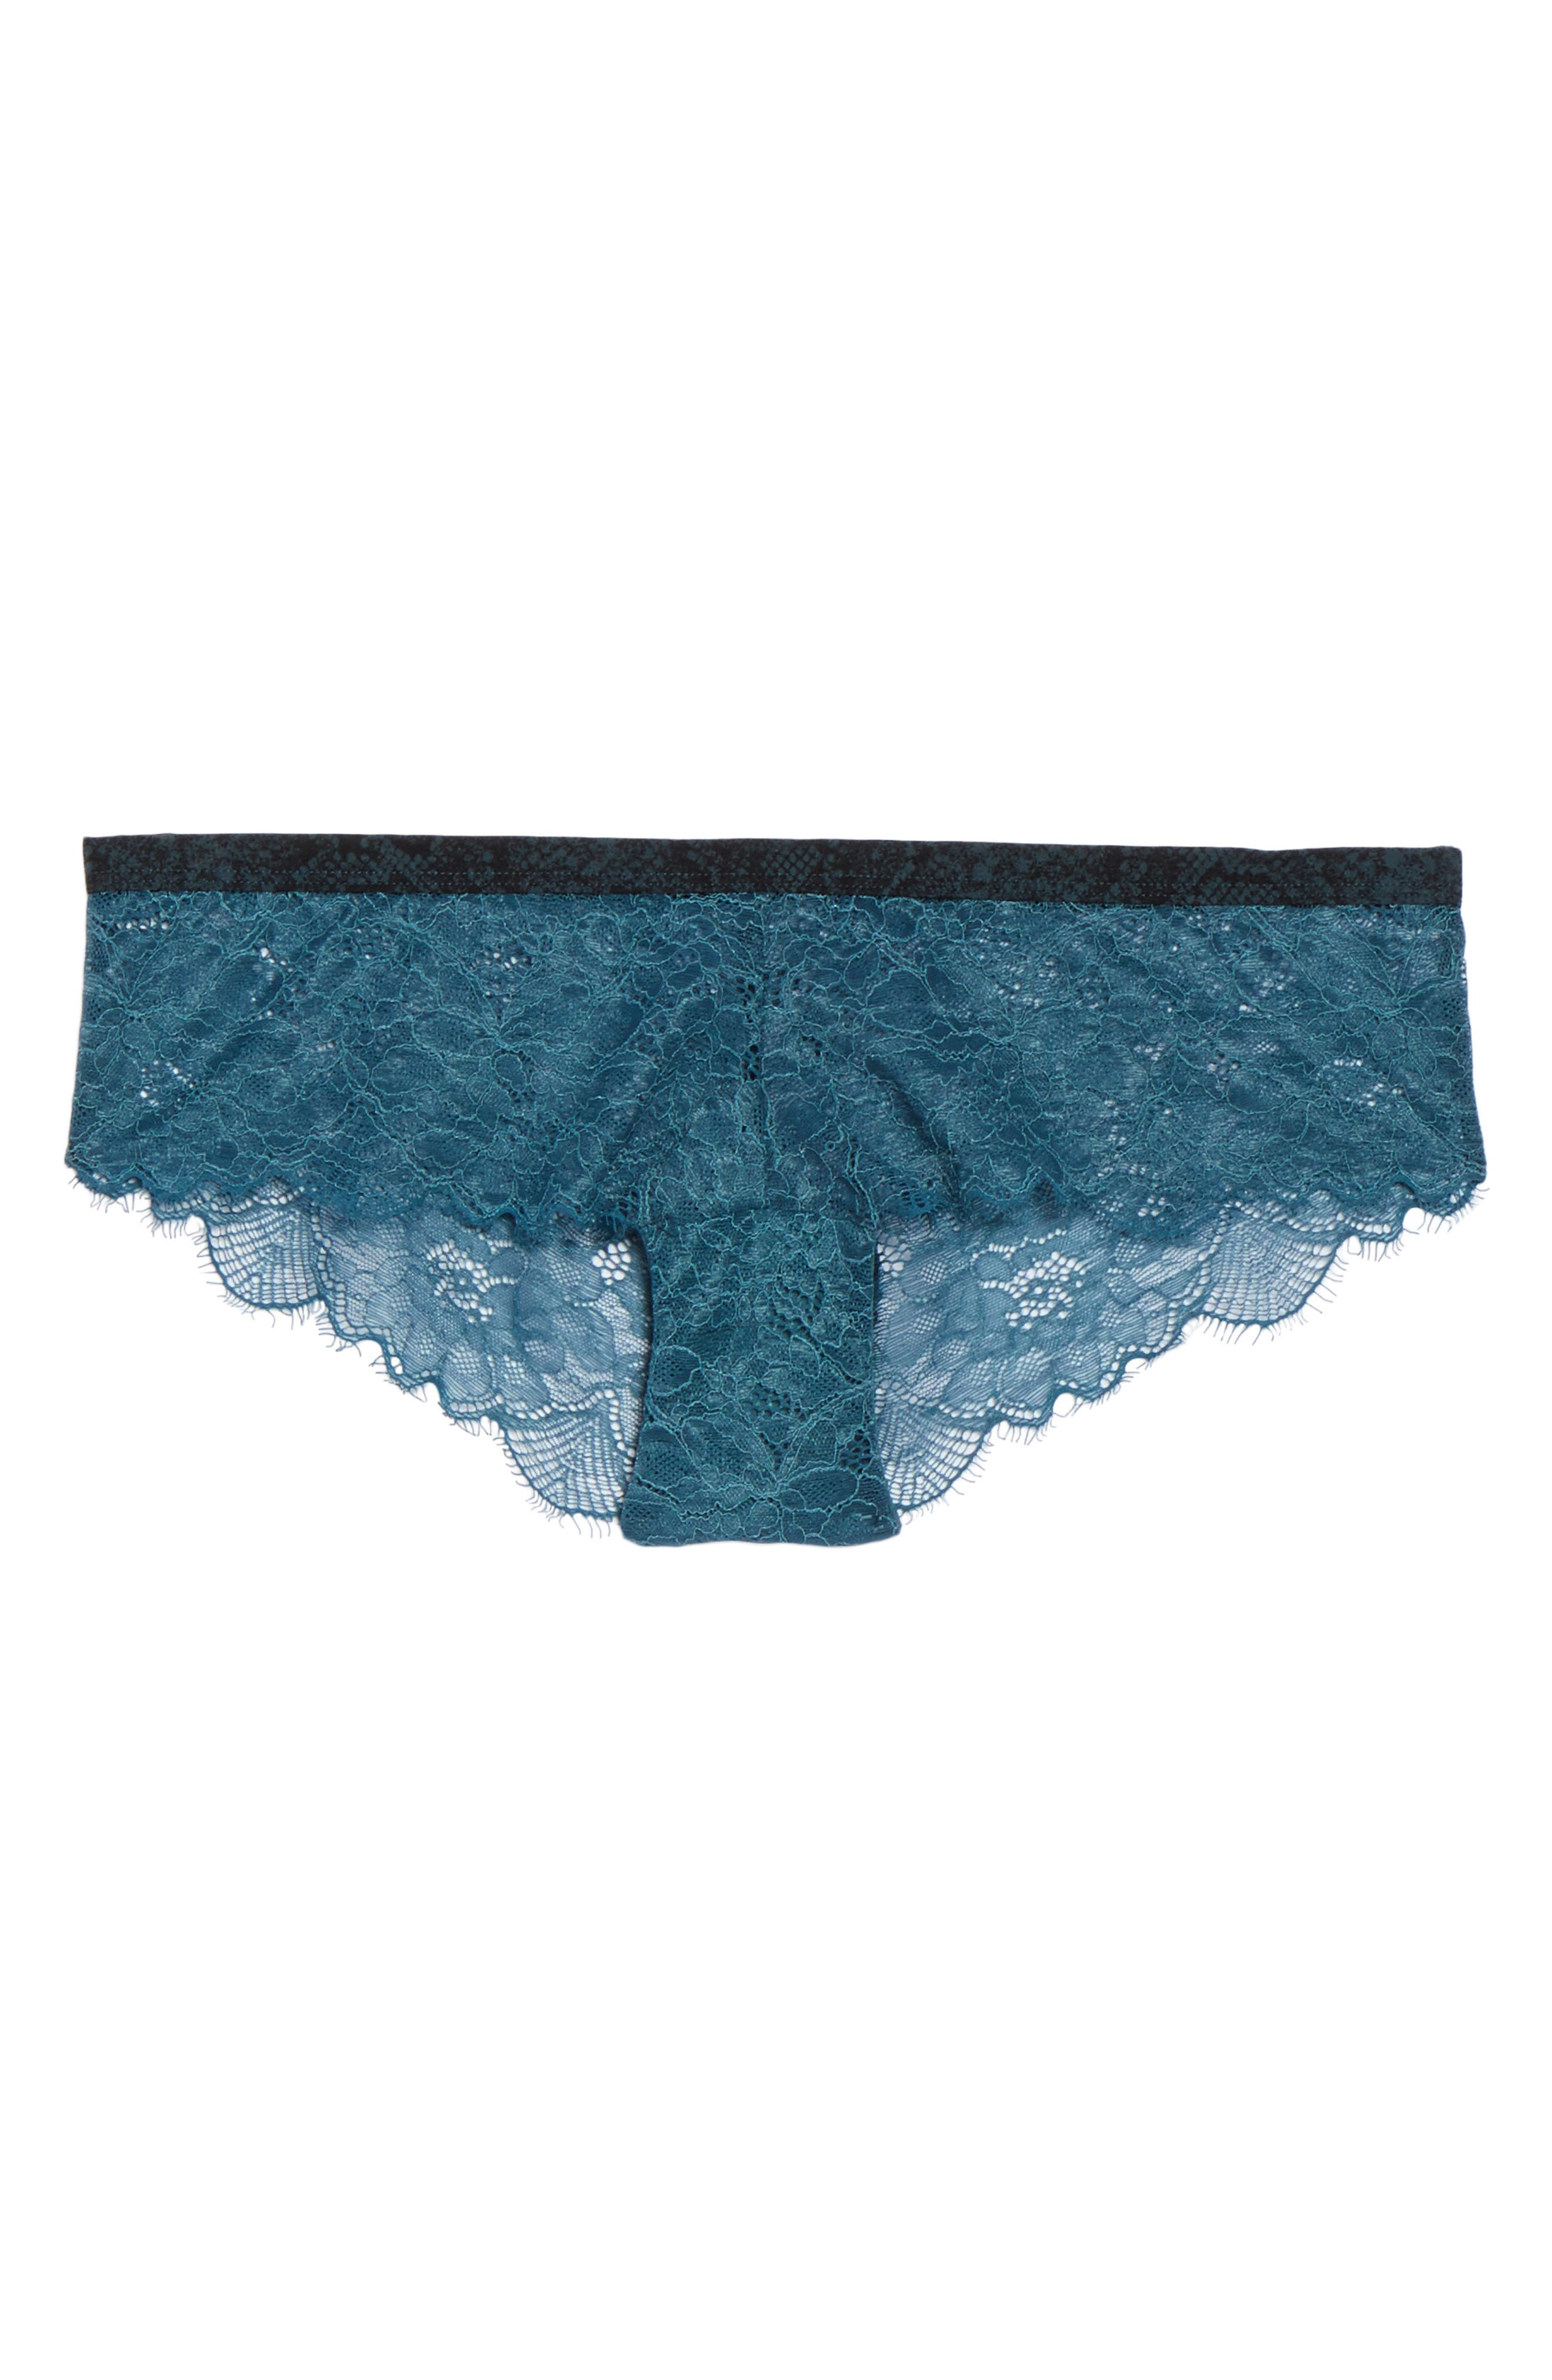 Dragonfly Lace Panties,                             Alternate thumbnail 15, color,